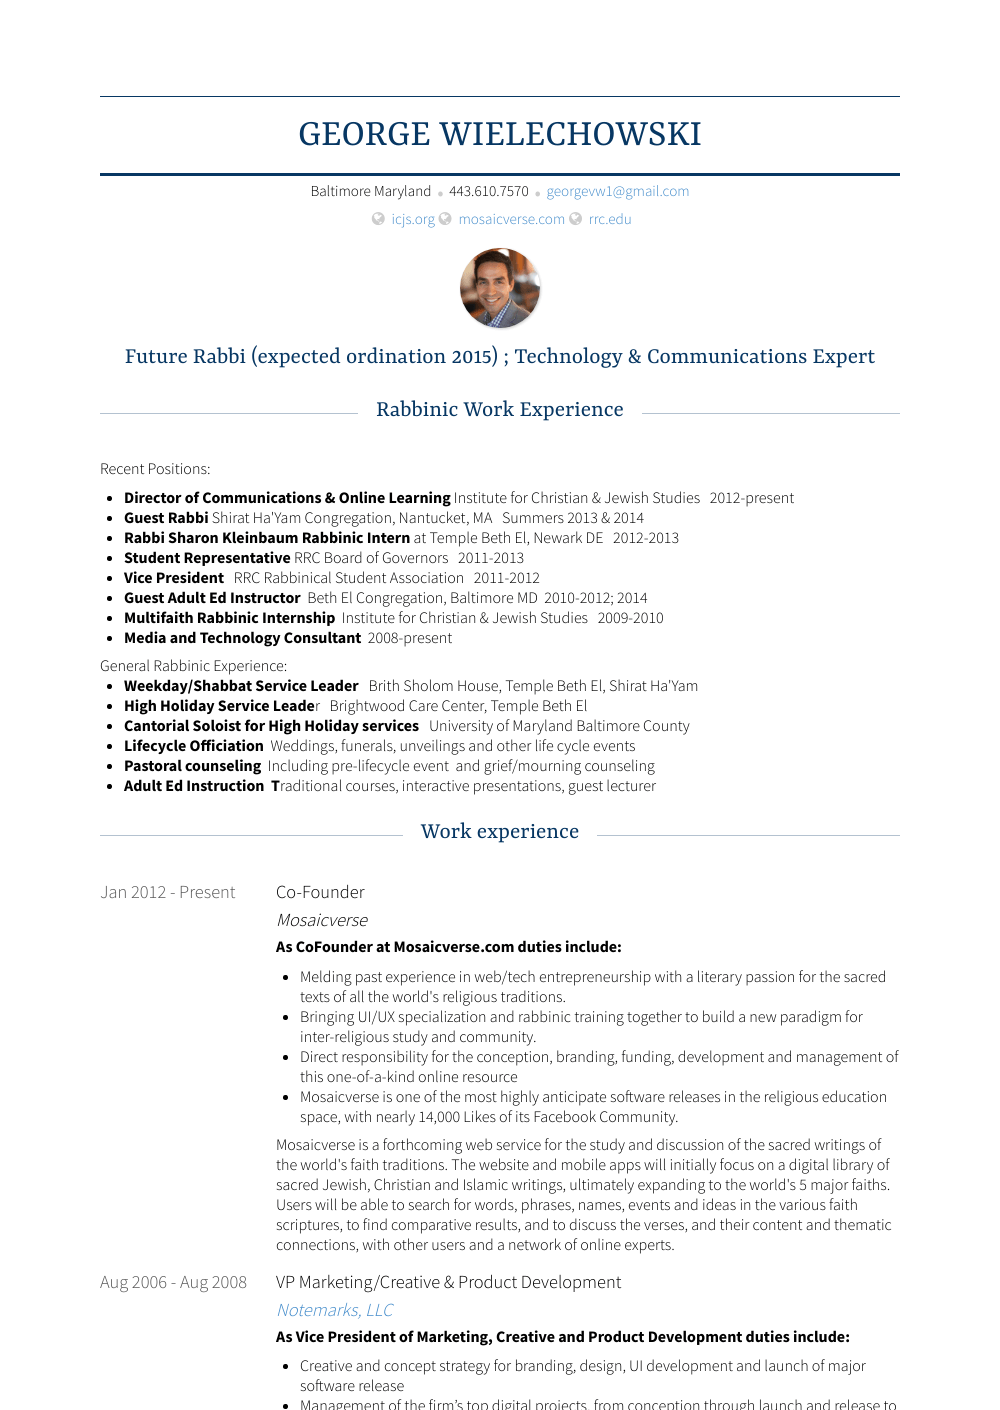 Co-founder - Resume Samples & Templates | VisualCV